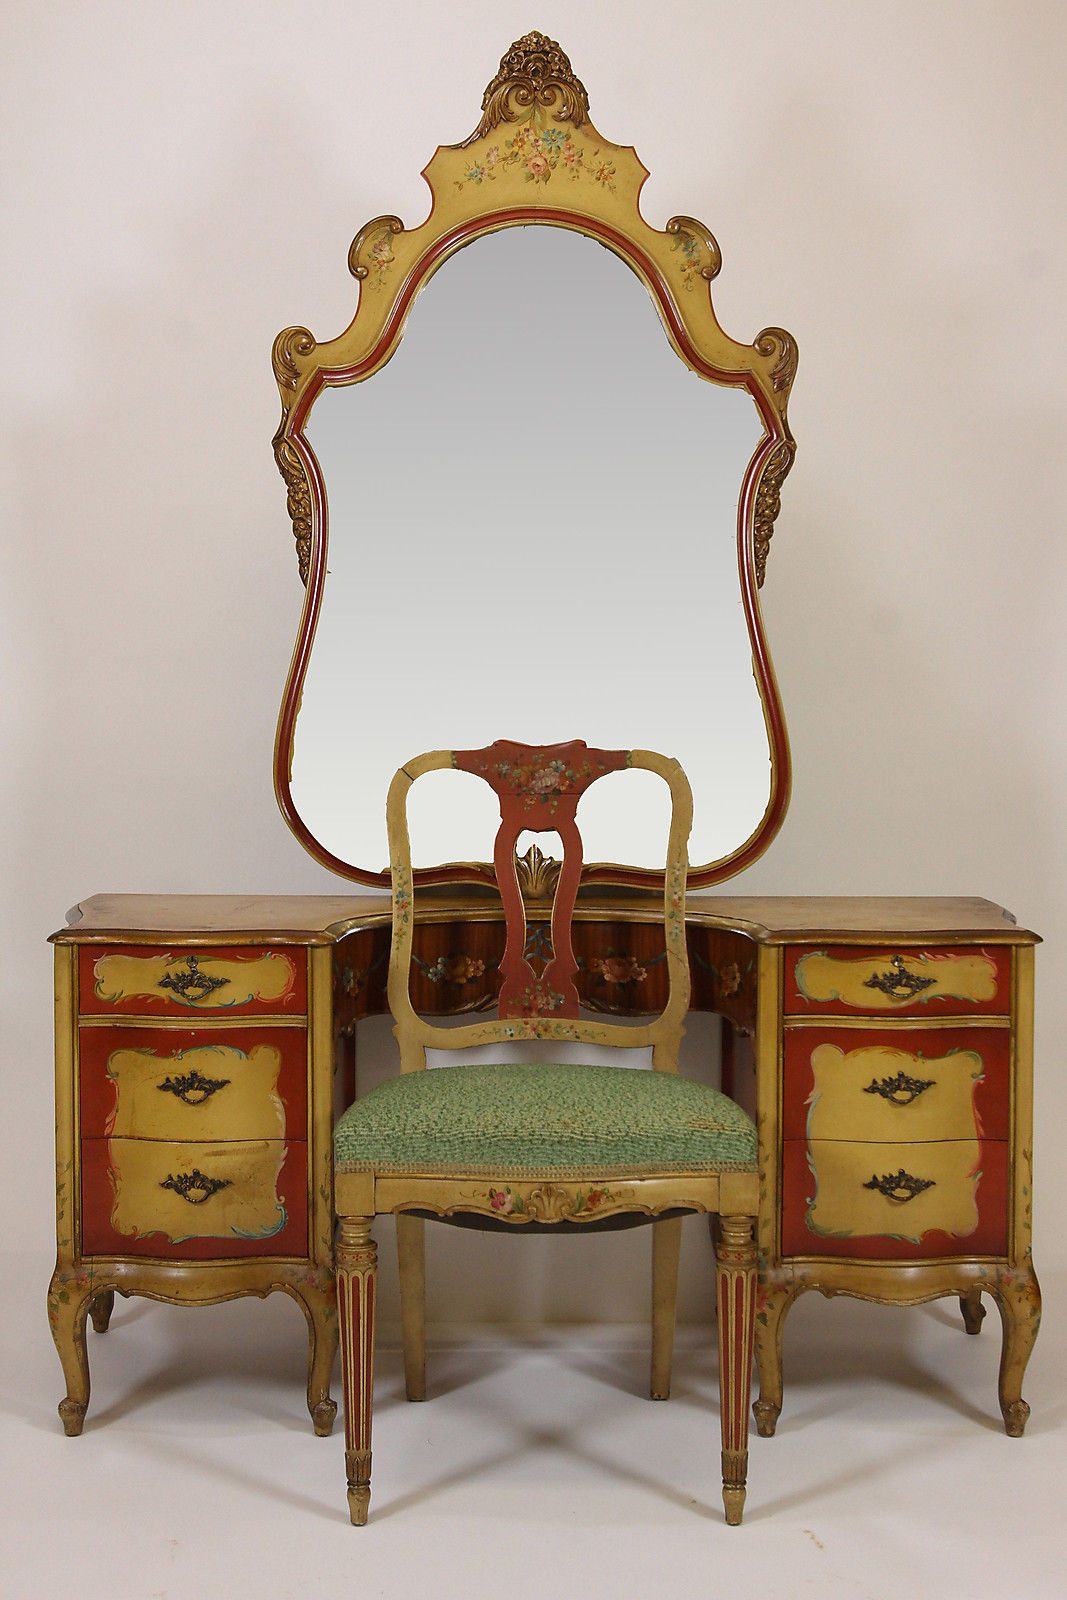 Antique Robert W Irwin Hand Painted Vanity Desk Chair & Mirror Phoenix  Furniture - Antique Robert W Irwin Hand Painted Vanity Desk Chair & Mirror